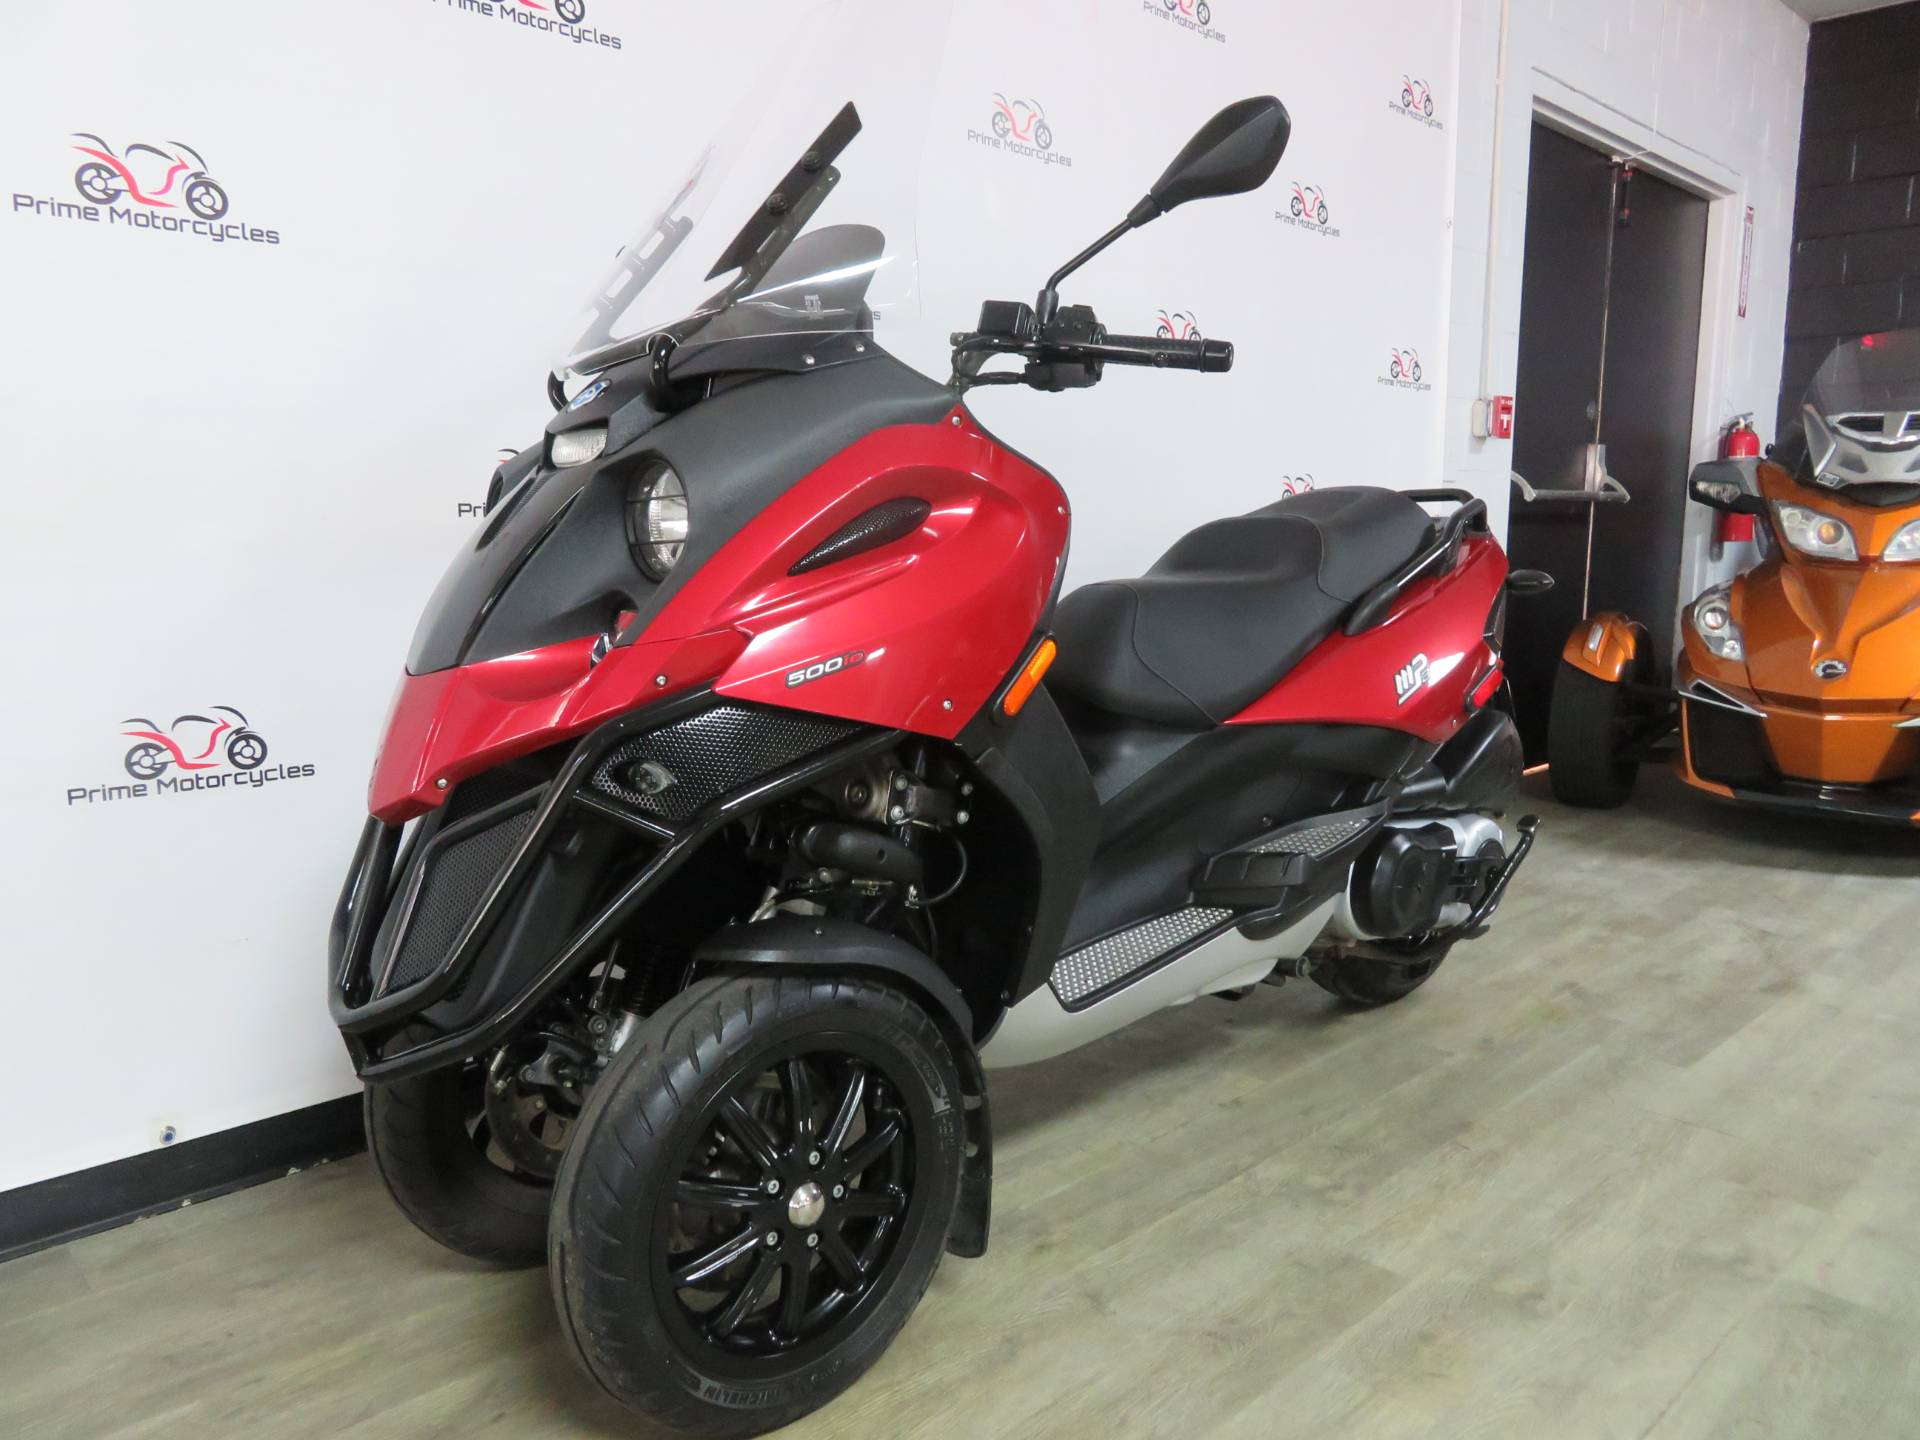 2009 Piaggio MP3 500 in Sanford, Florida - Photo 2